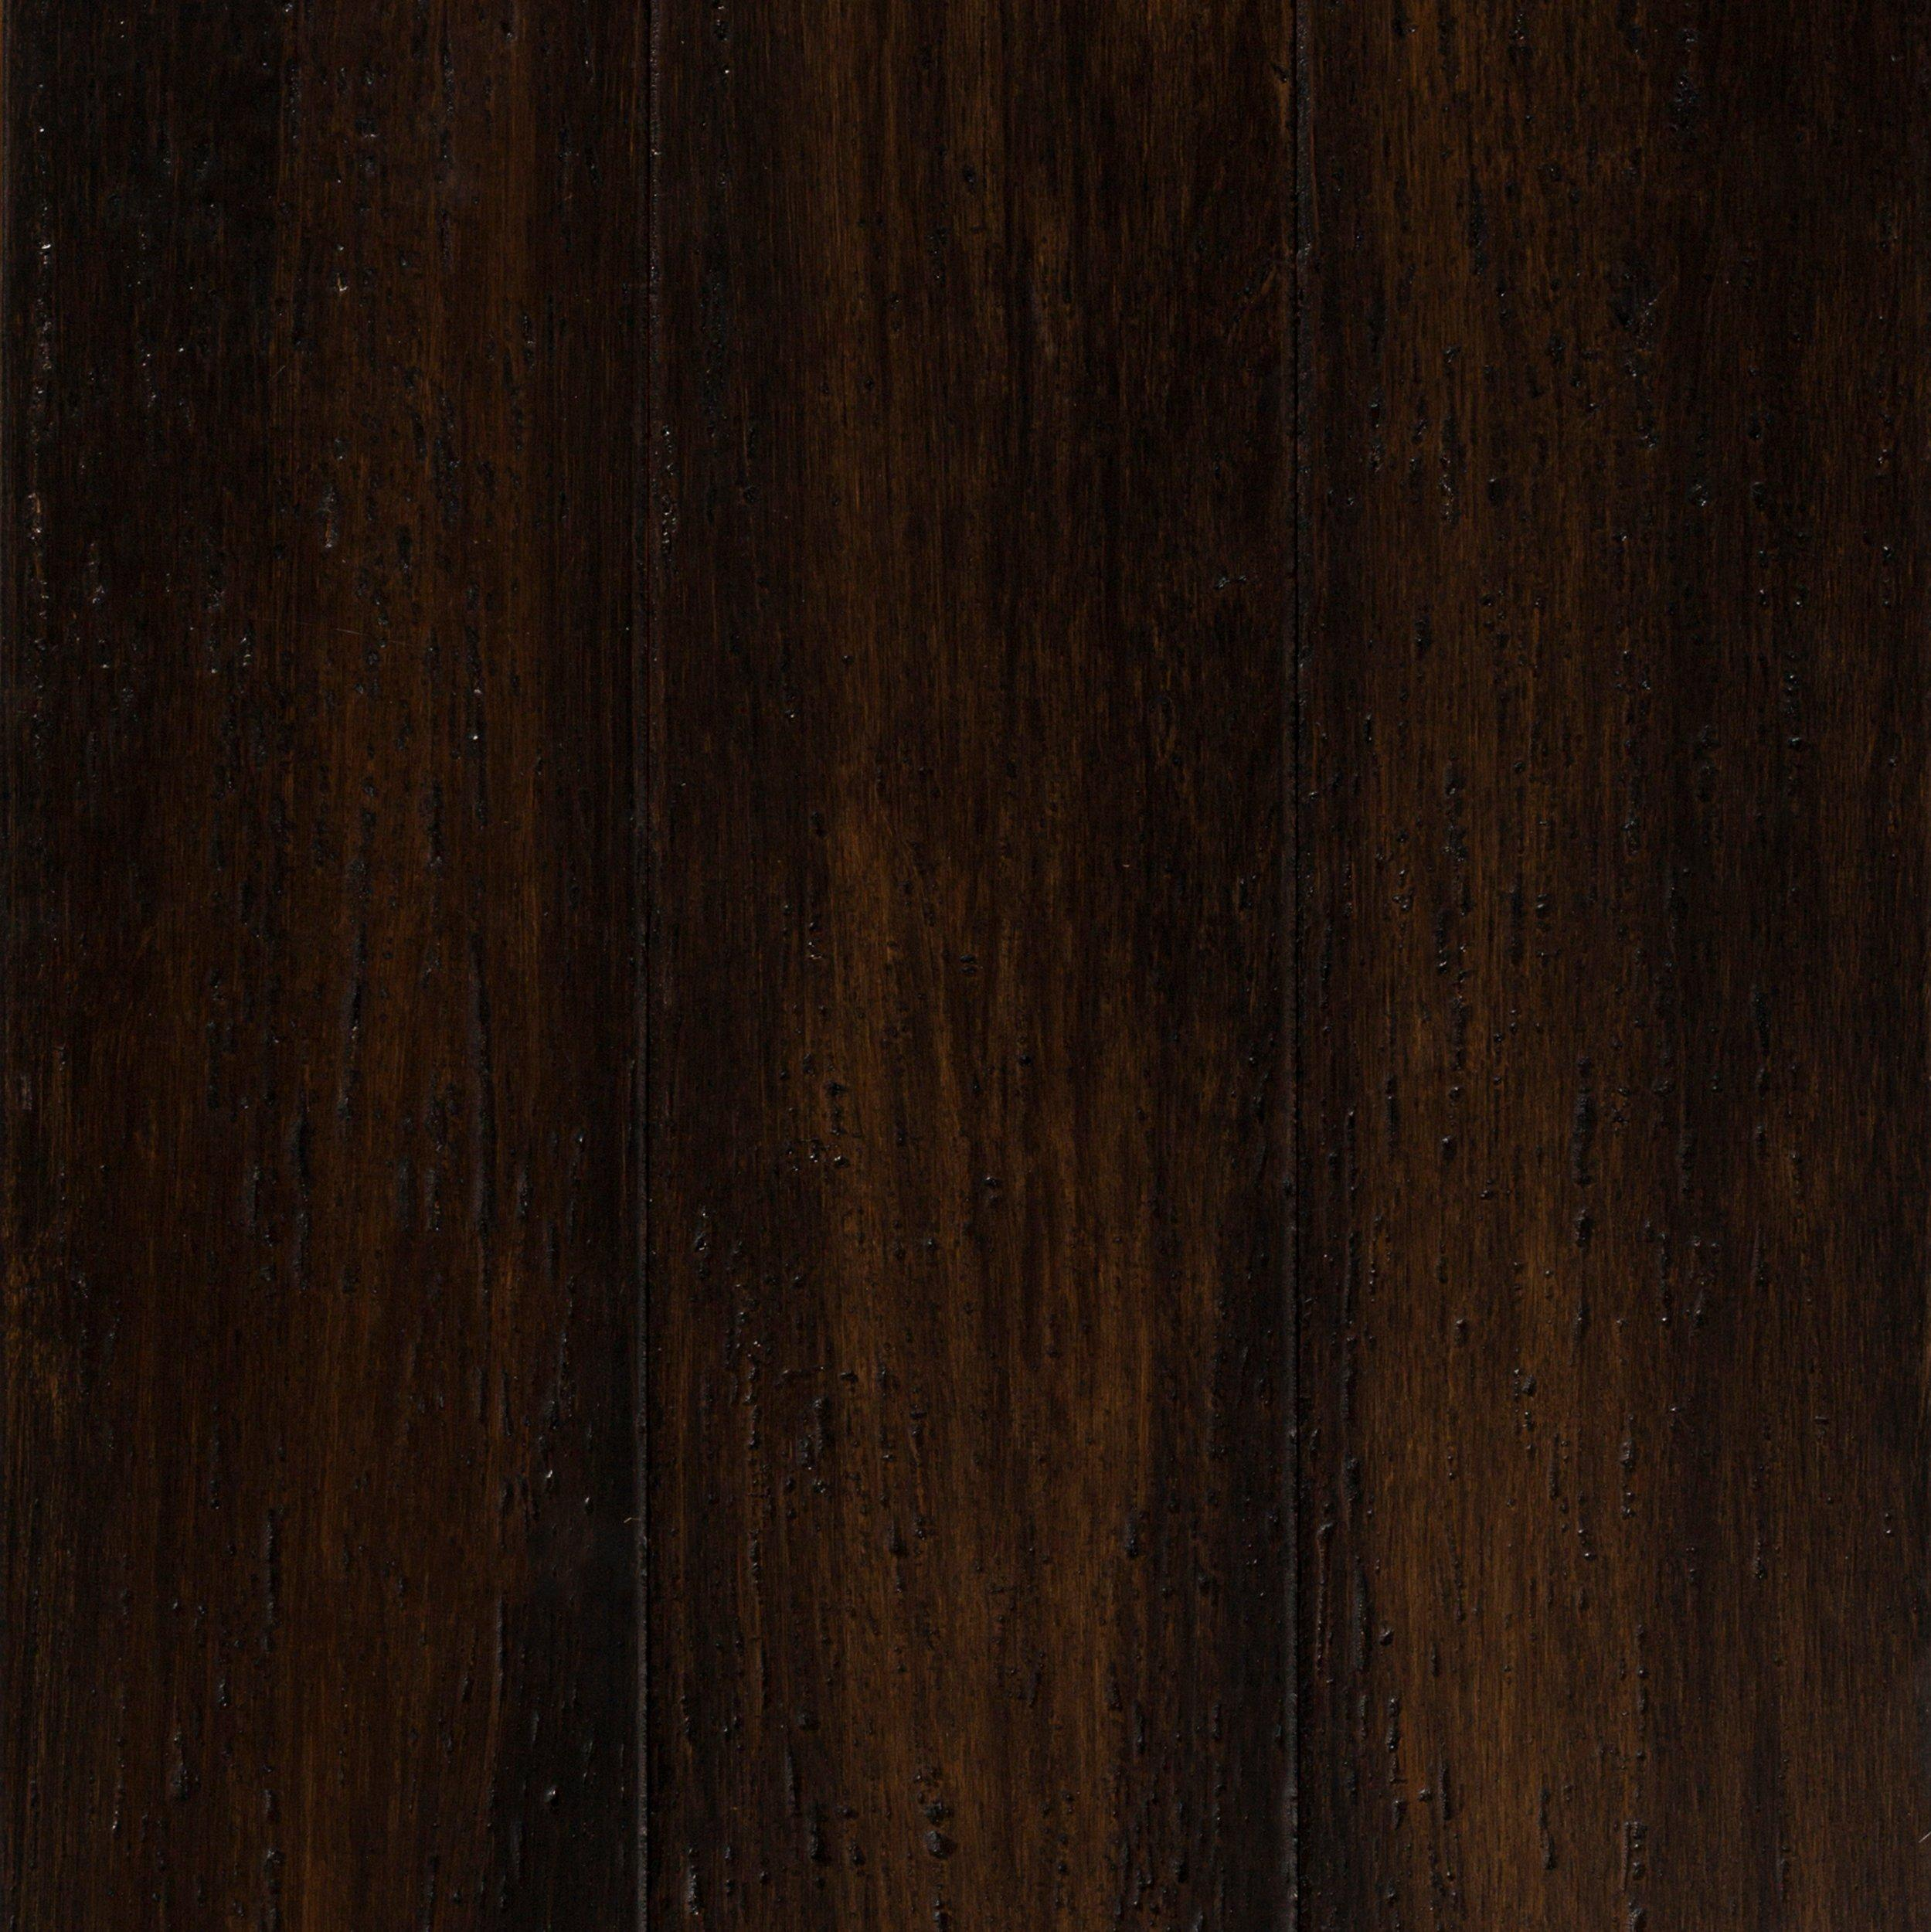 Barcelona Wire Brushed Solid Stranded Bamboo Wood